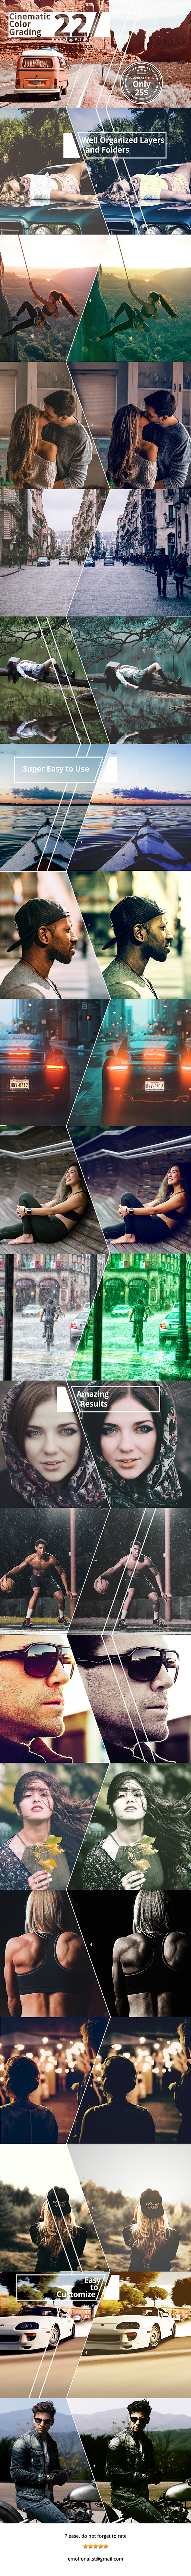 Neo Cinematic Color Grading Photoshop Action - Photo Effects Actions